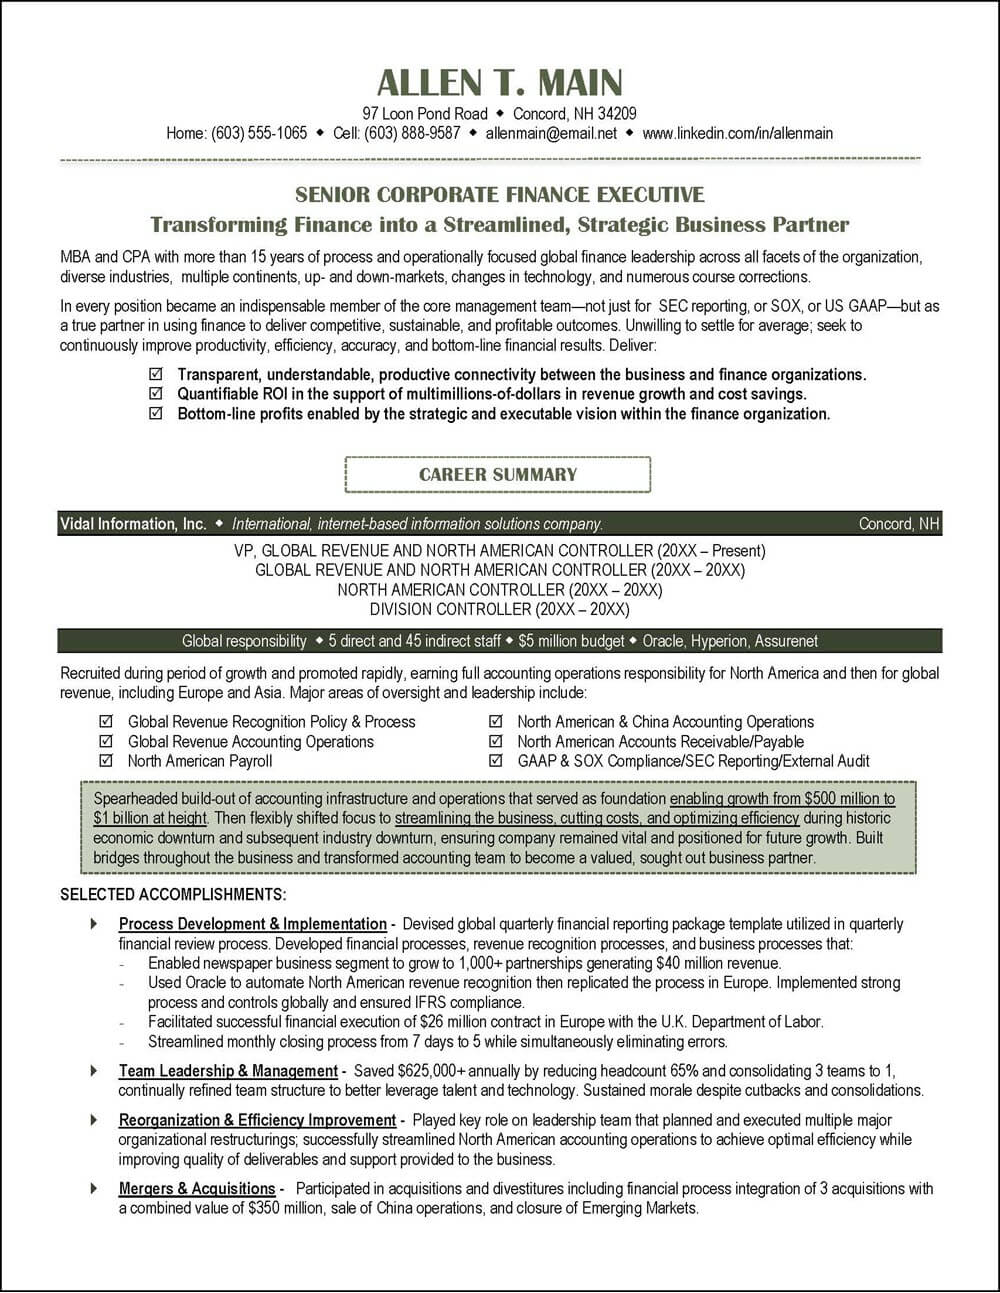 Example Corporate Finance Executive Resume pg 1